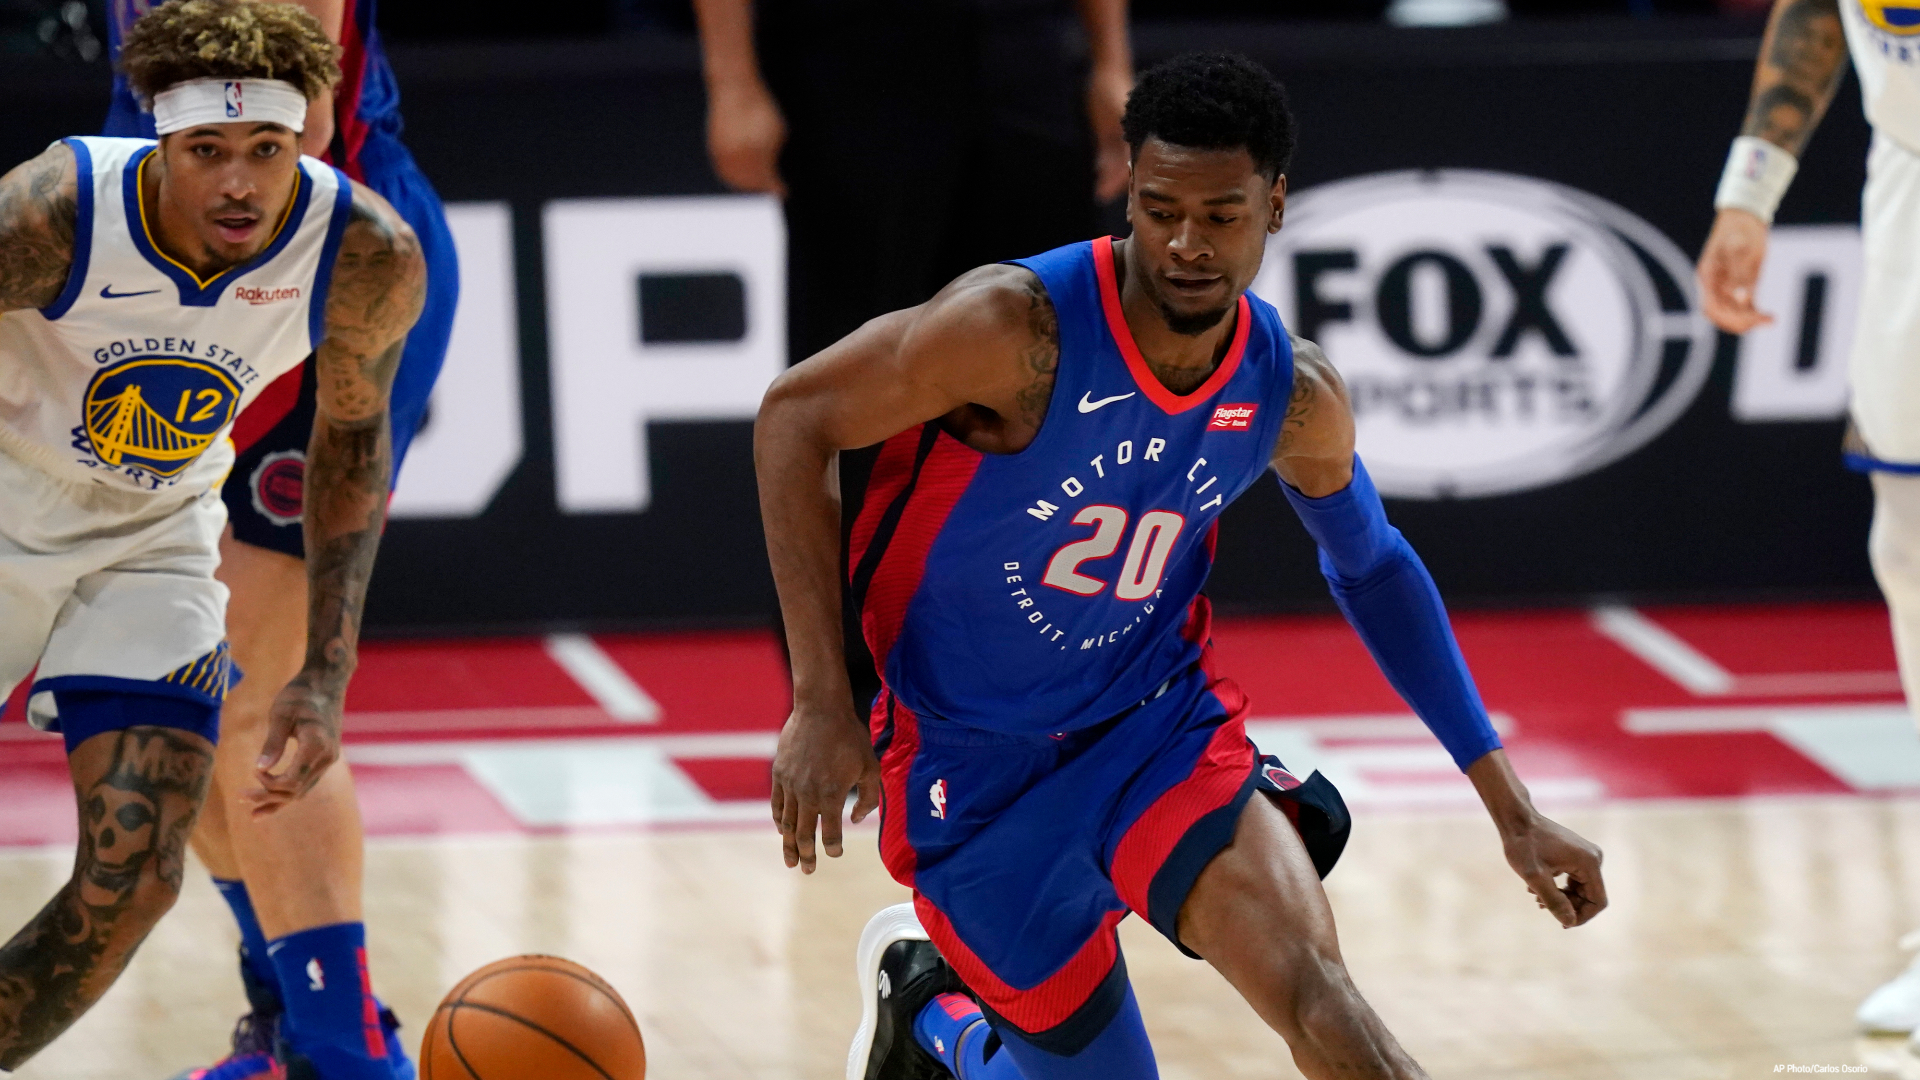 Detroit Pistons forward Josh Jackson (20) chases a loose ball during the first half of the team's NBA basketball game against the Golden State Warriors, Tuesday, Dec. 29, 2020, in Detroit. (AP Photo/Carlos Osorio)